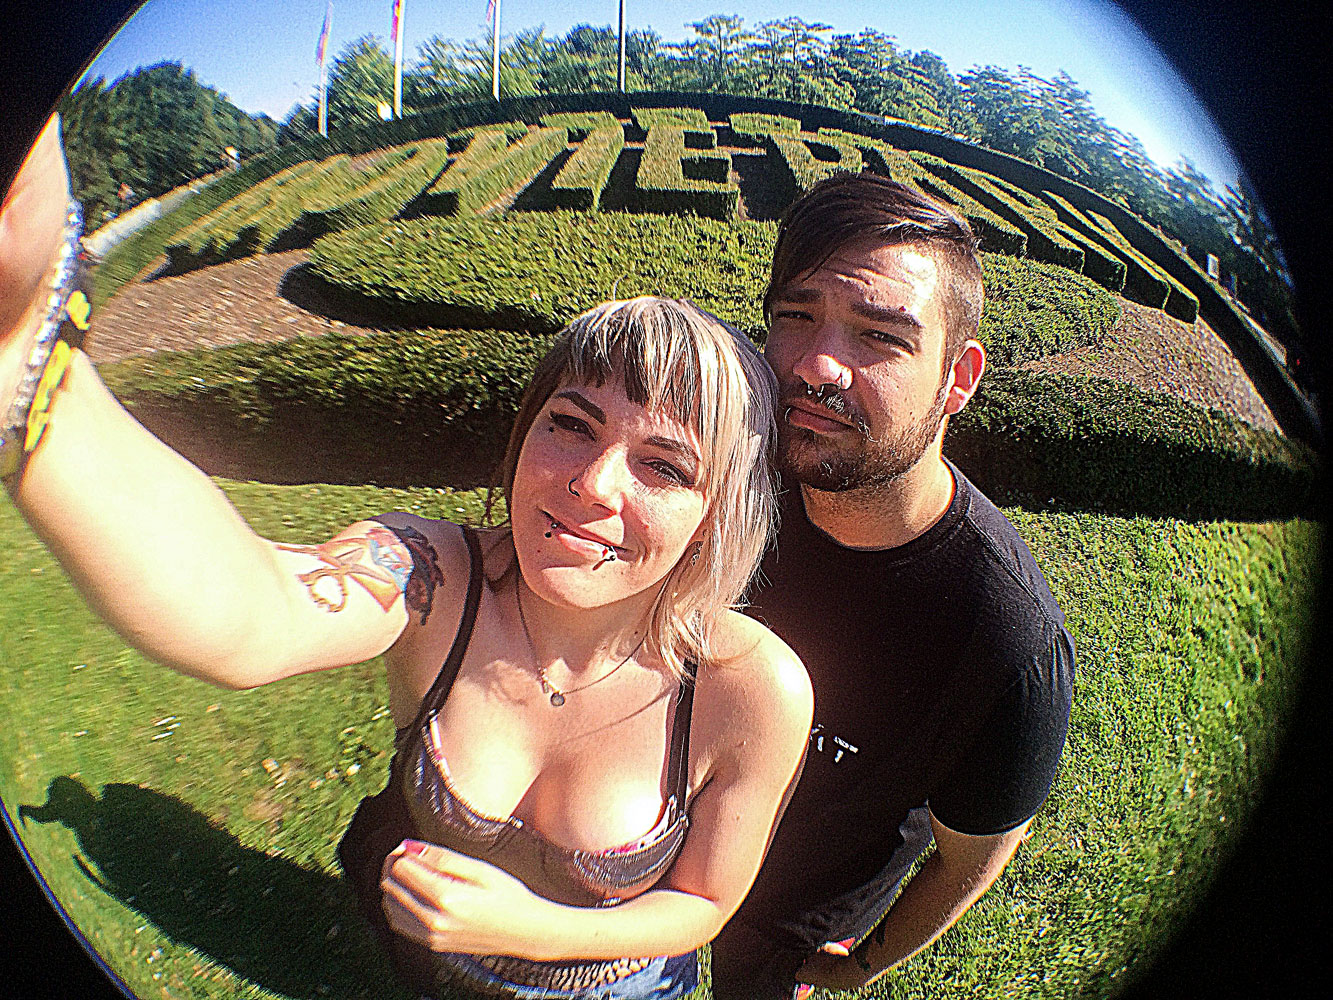 movie park germany outfit american apparel fisheye